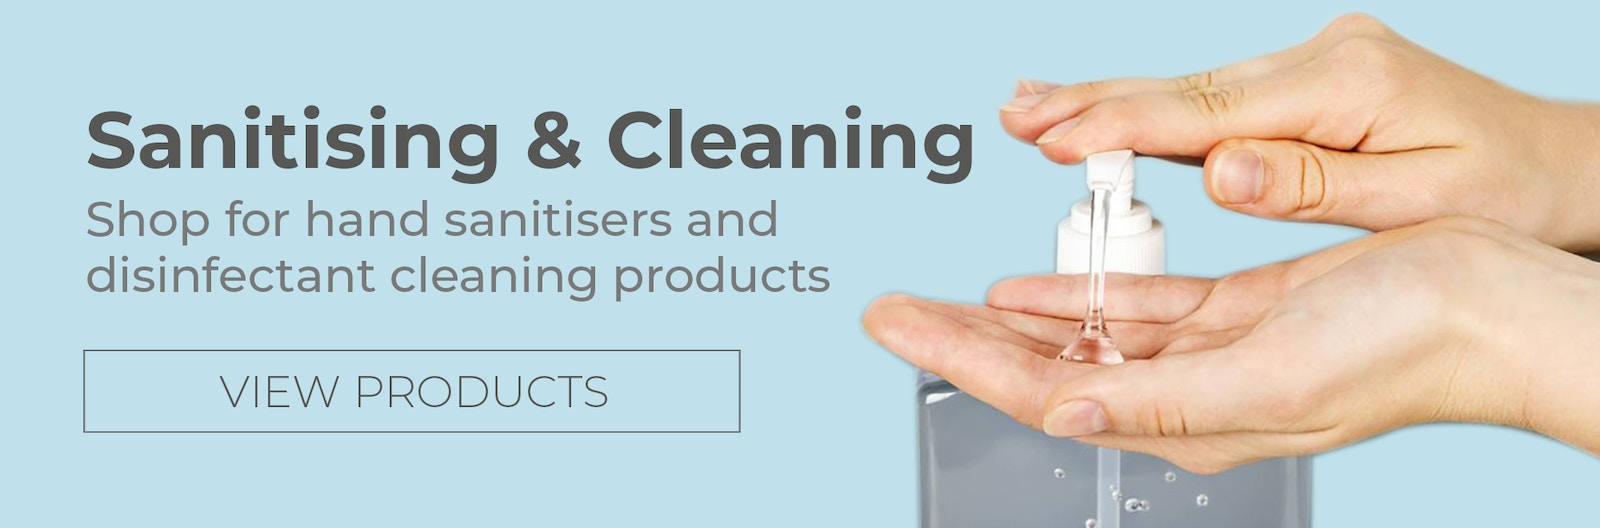 Shop for Sanitisers & Disinfectant Products